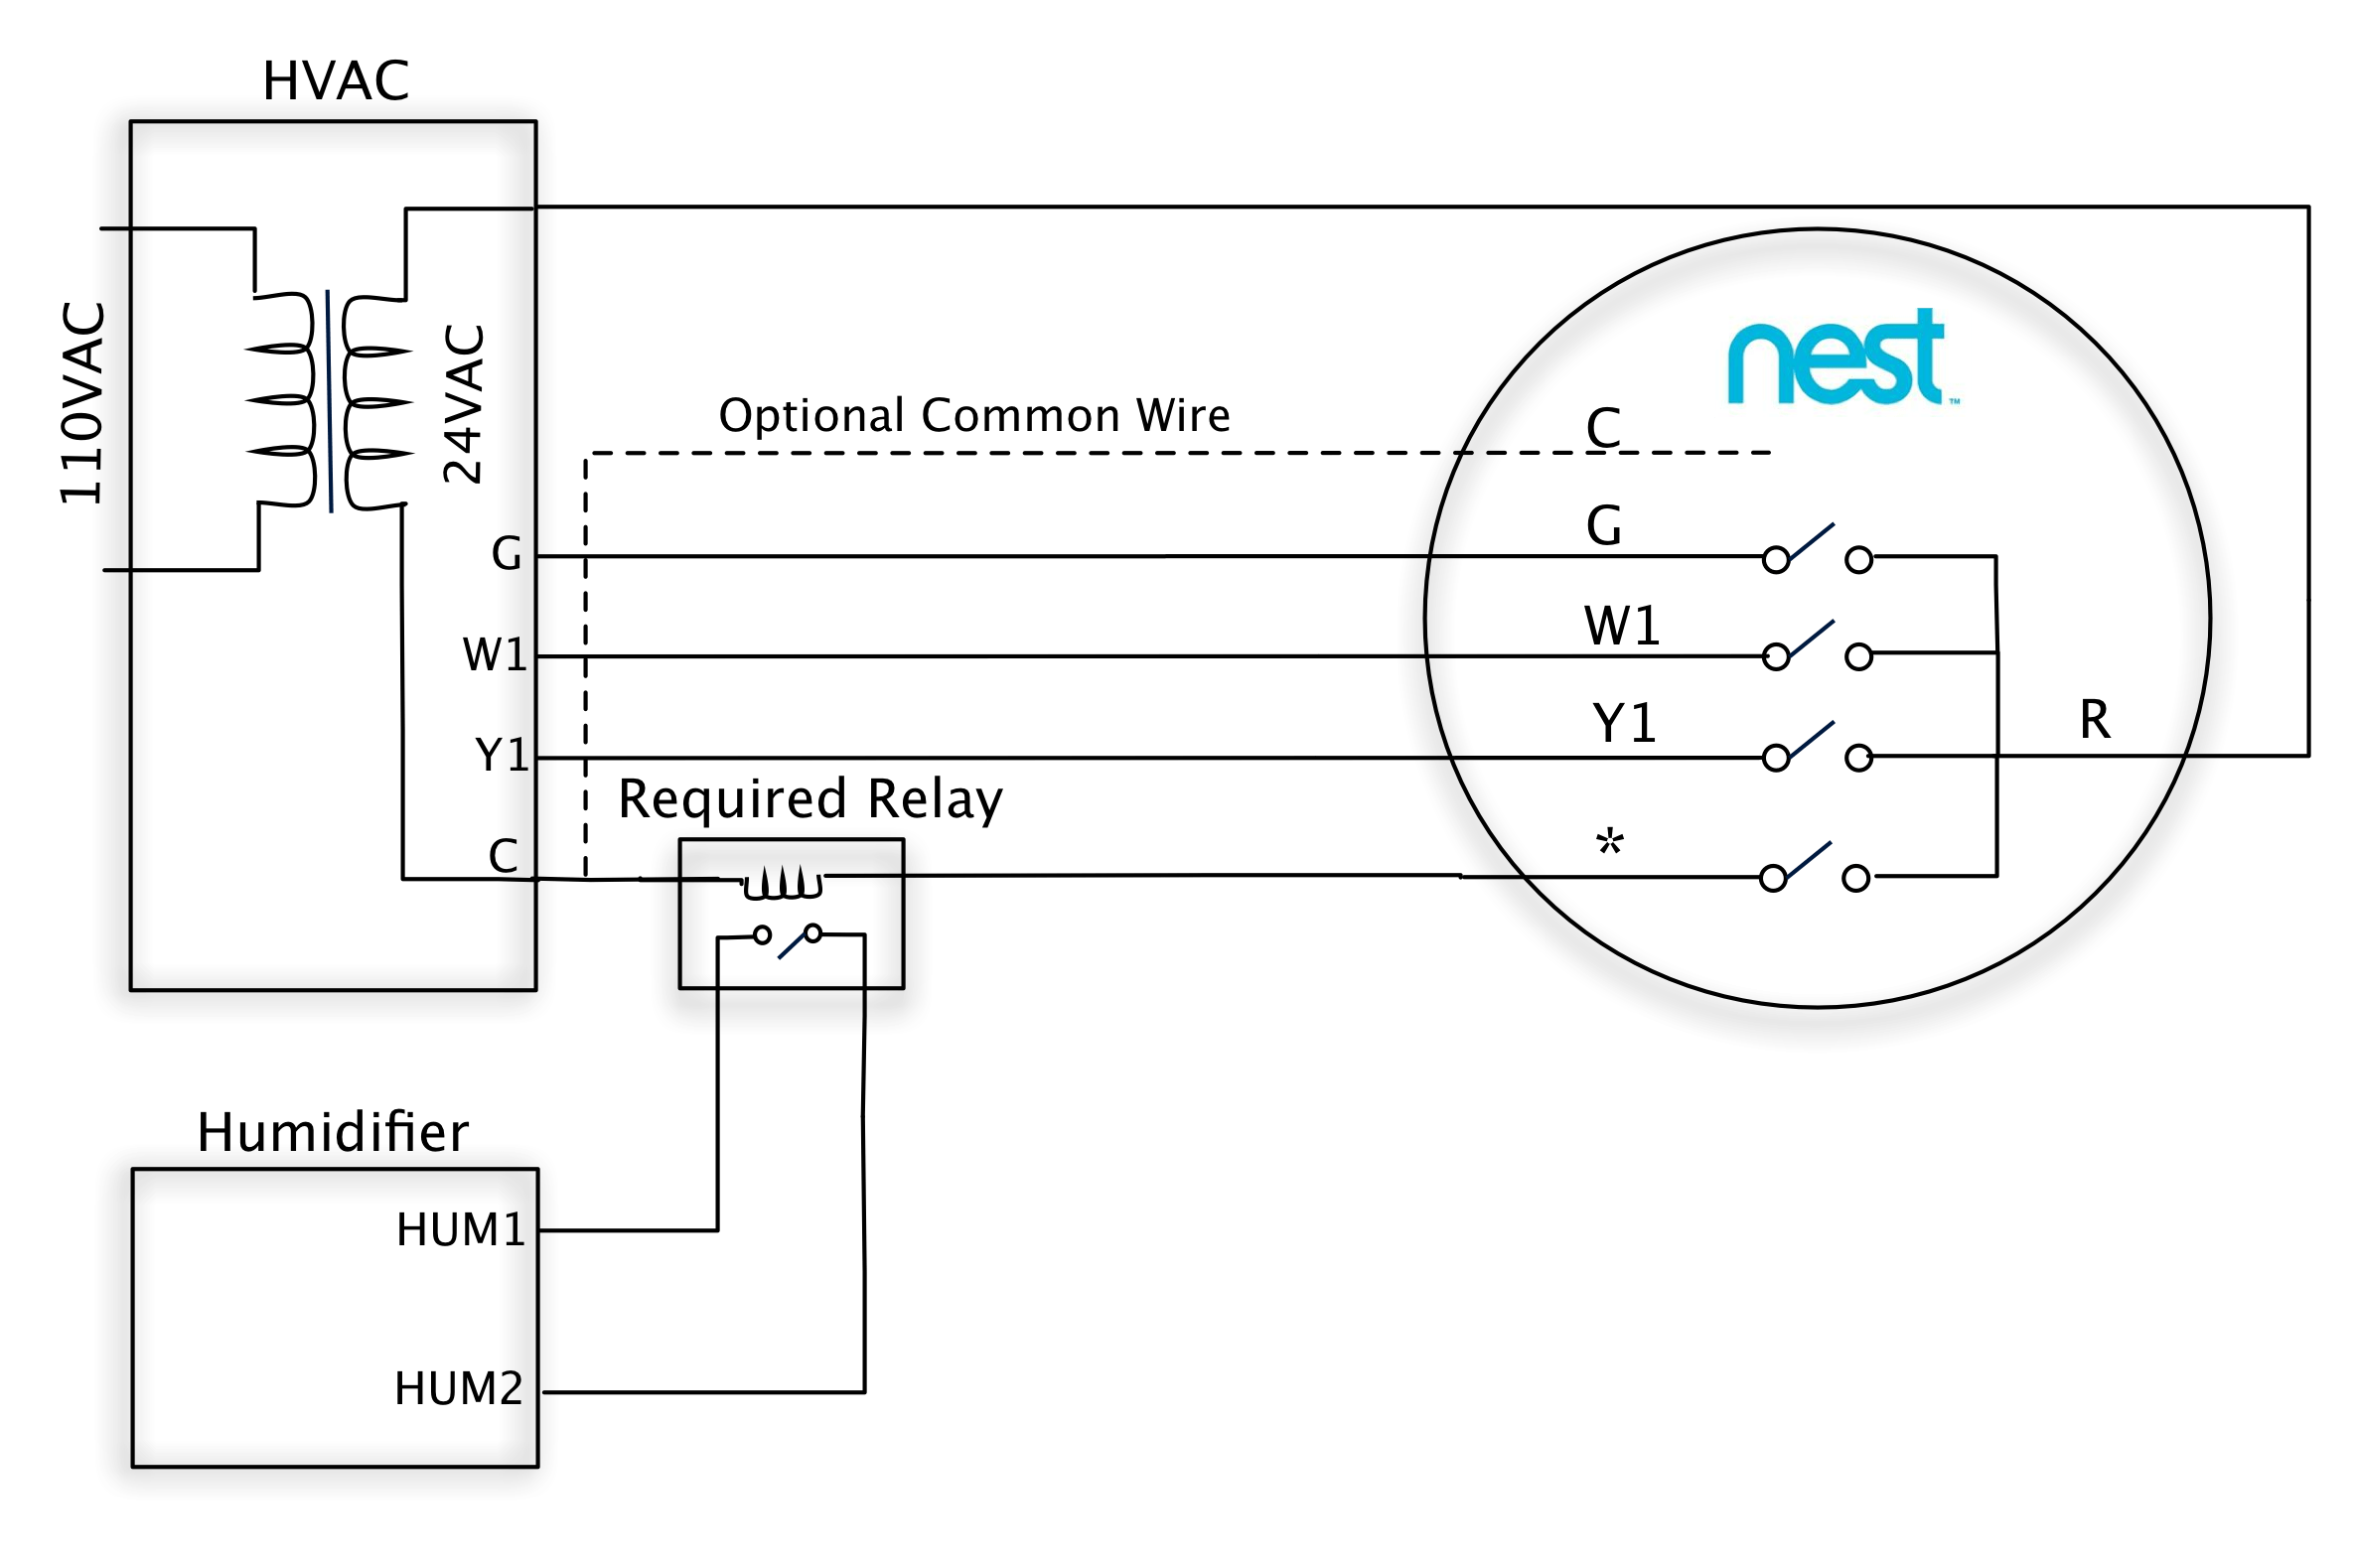 nest doorbell wiring diagram cat 6 for wall plates uk support